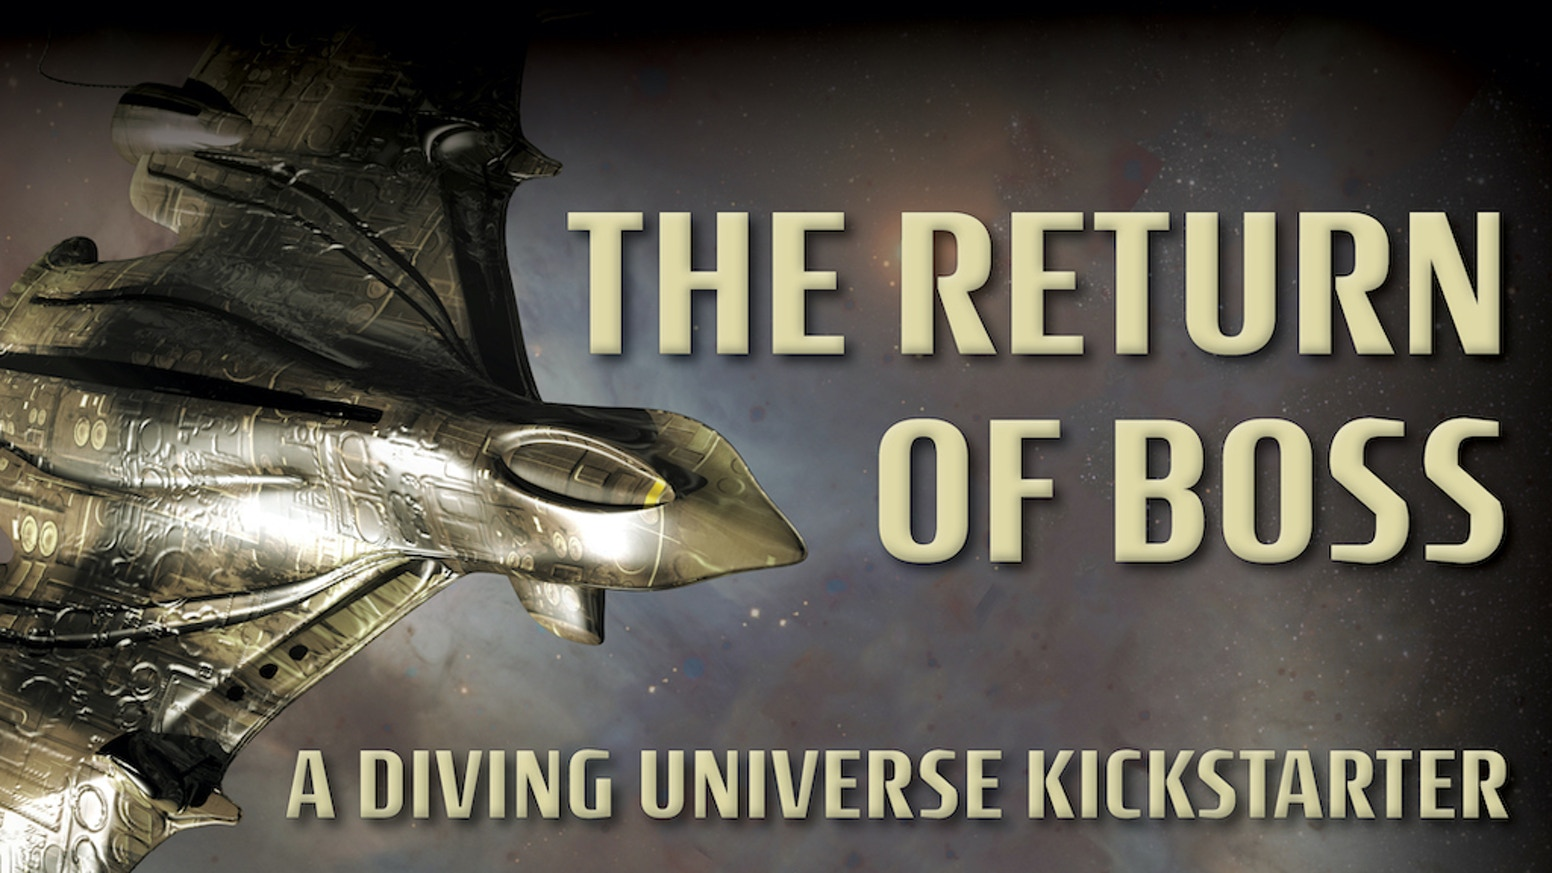 All rewards still available, including two new novels in the Diving Universe by Hugo Award-winning author Kristine Kathryn Rusch!